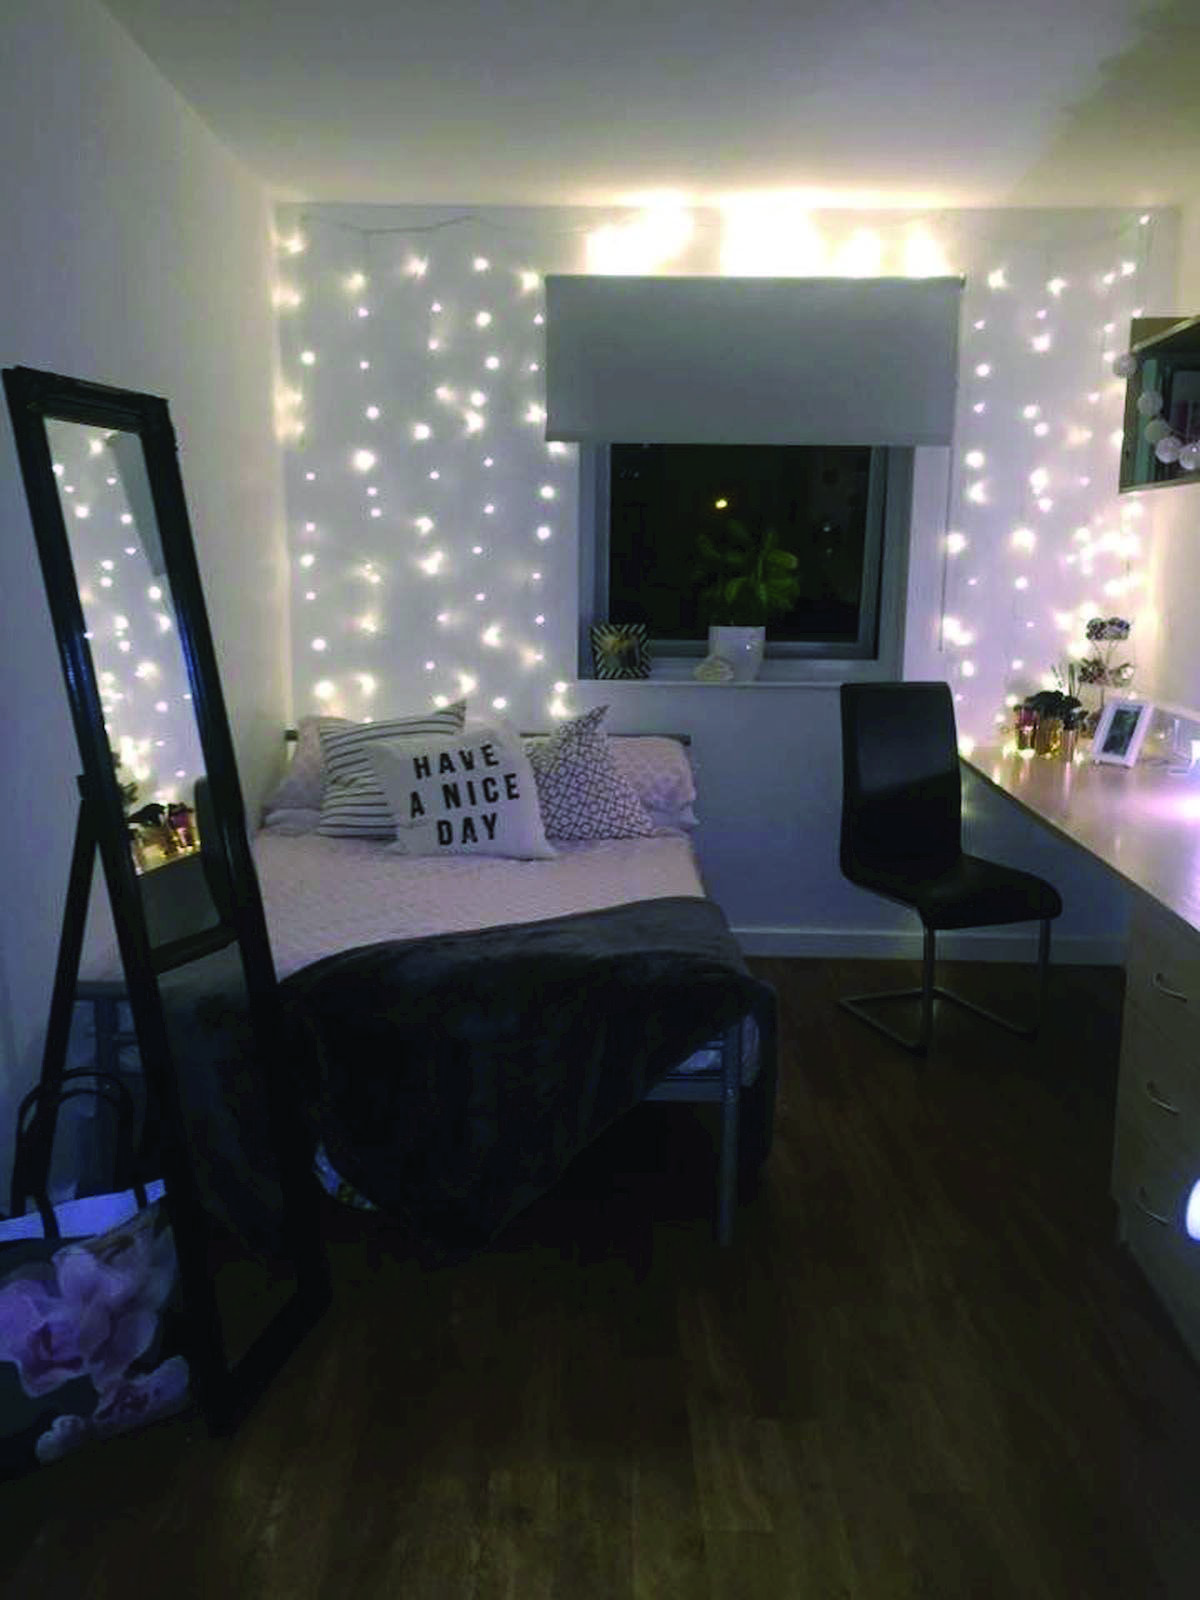 12 Girls Bedroom Concepts That Are Actually Exciting And Very Easy To Make Small Room Bedroom Dorm Room Inspiration Aesthetic Bedroom